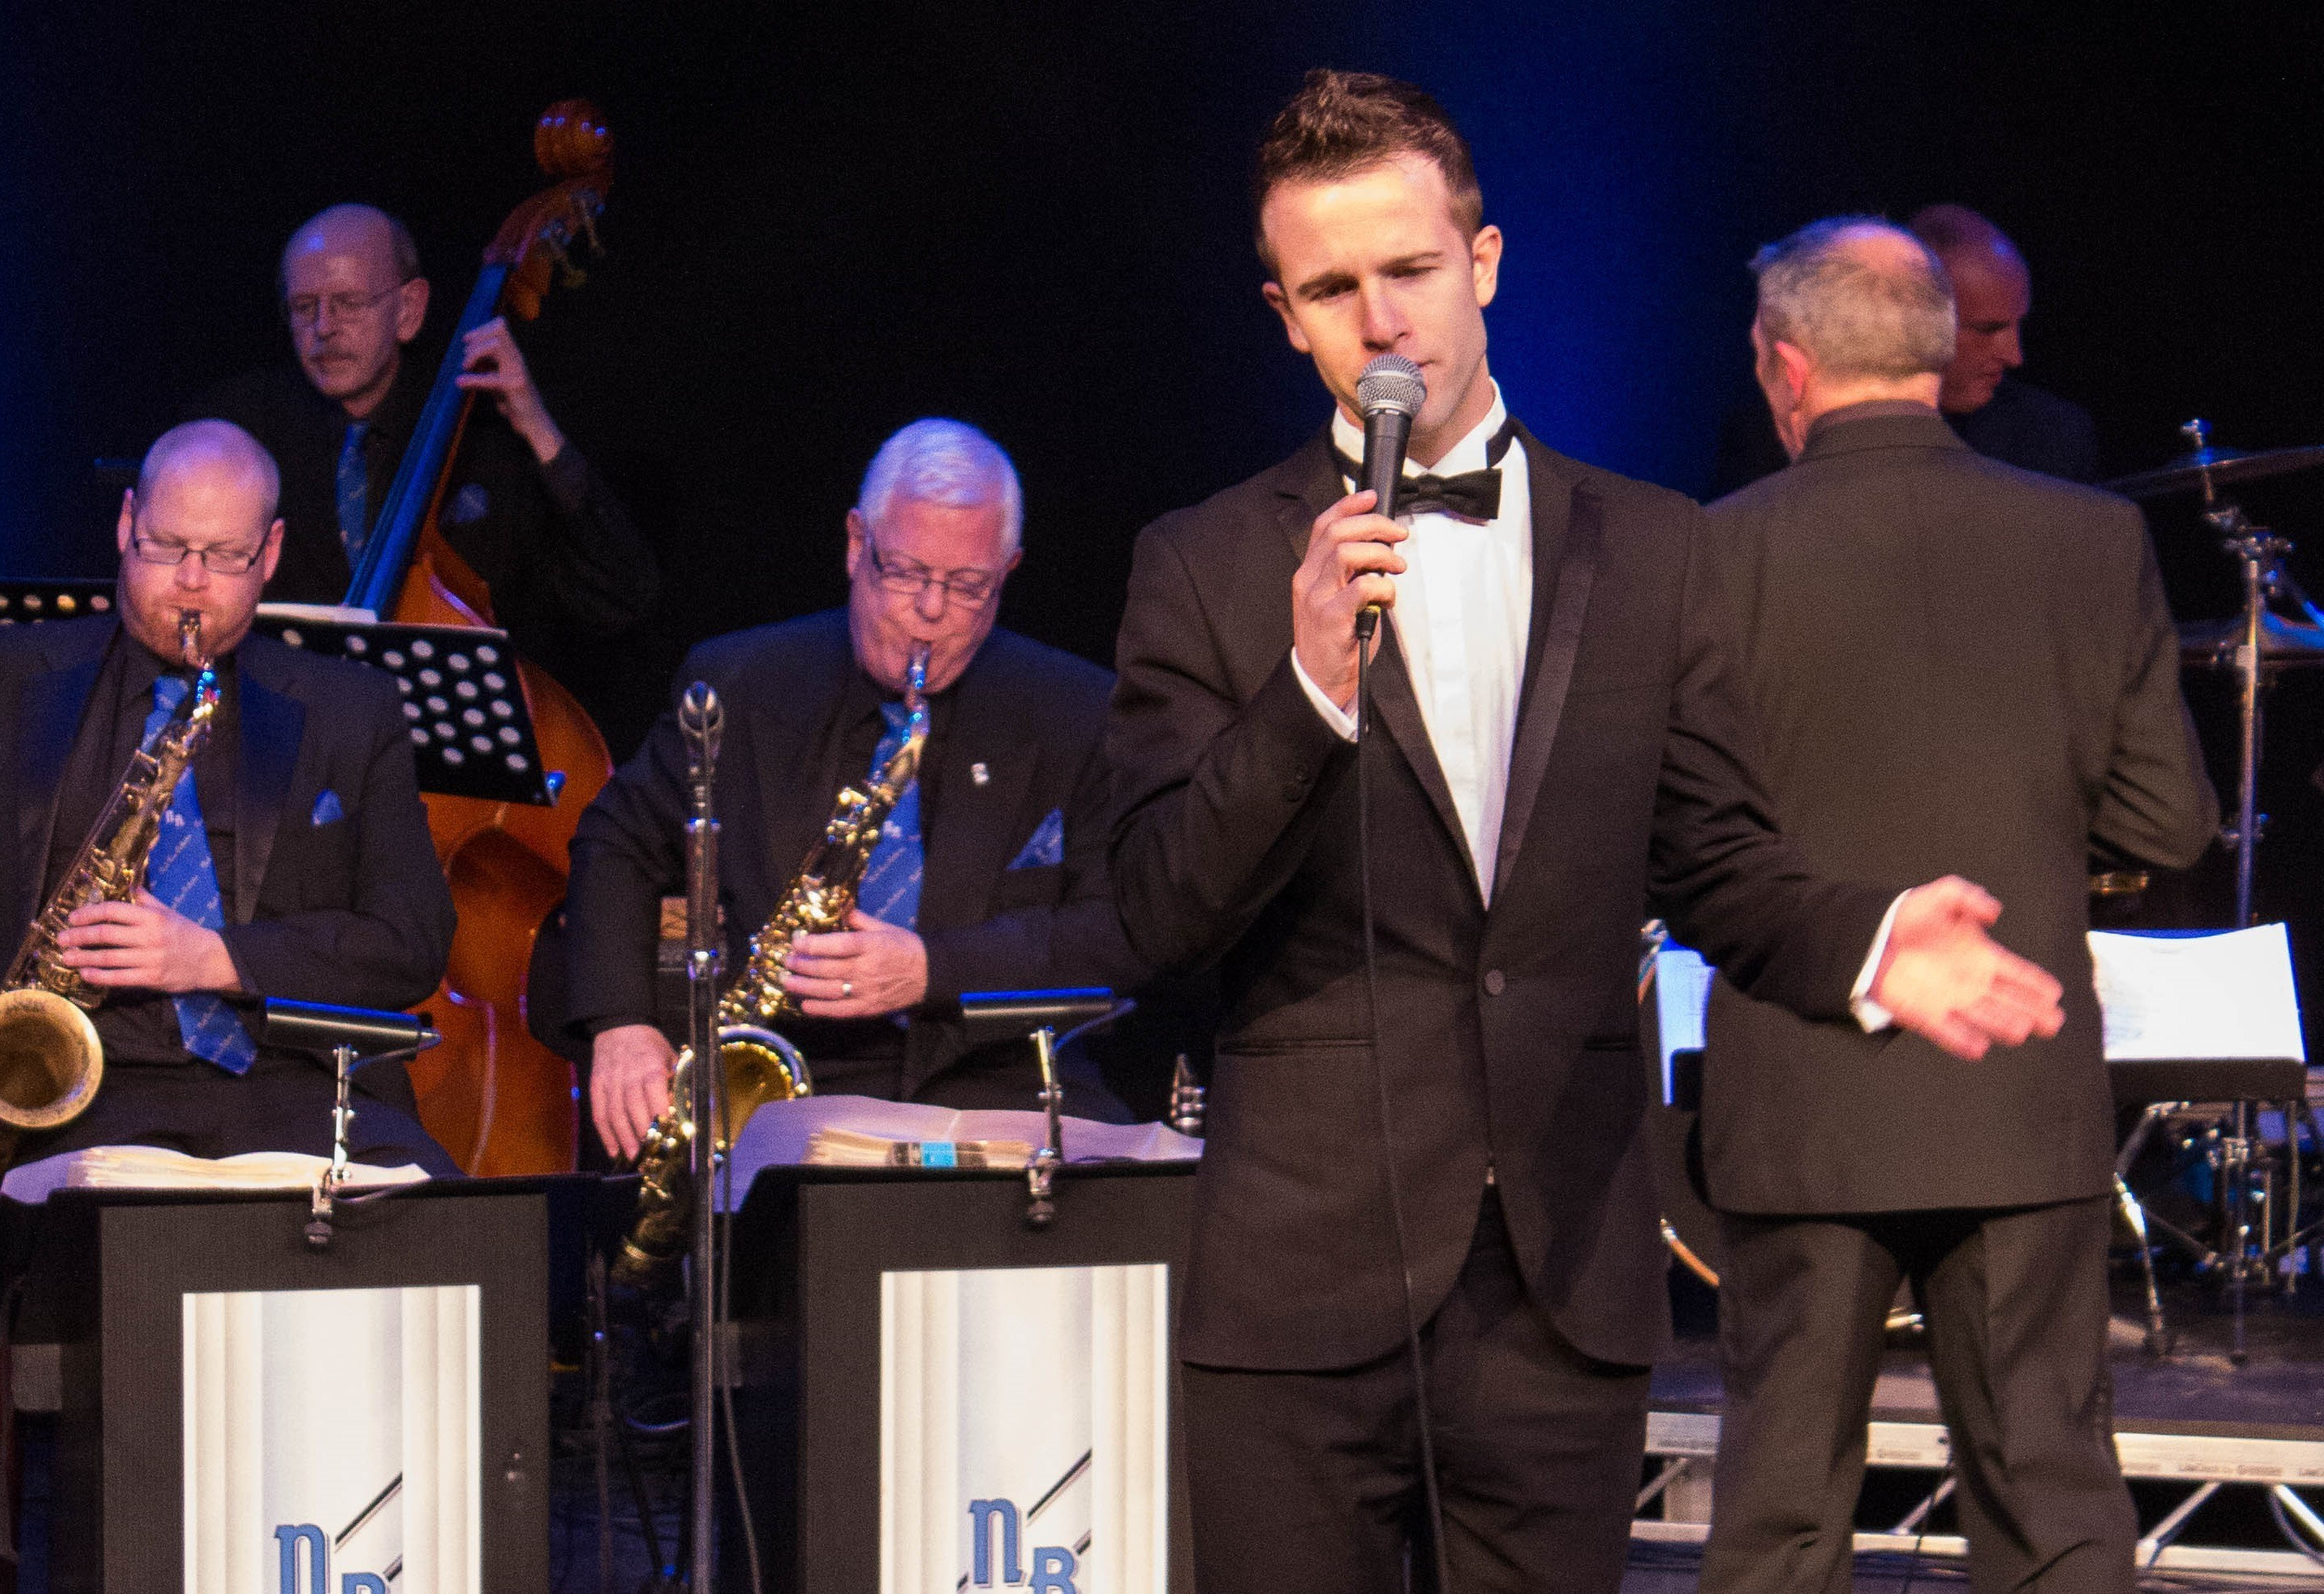 The Nick Ross Orchestra Presents Sounds of the Glenn Miller Era